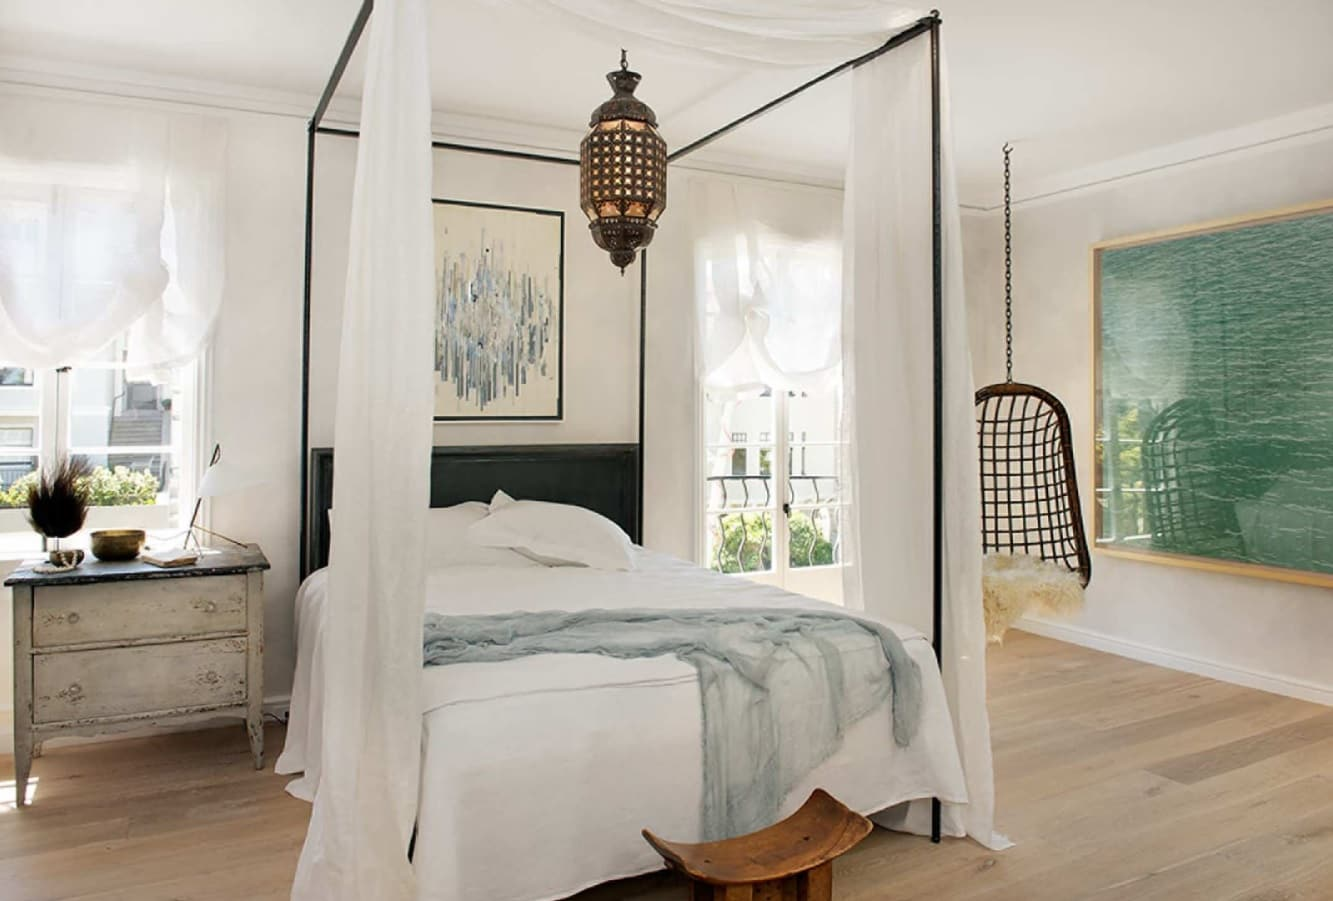 Overview of 10+ Biggest Home Design Trends in 2019 so Far. Canopy queen bed and white colored bedroom